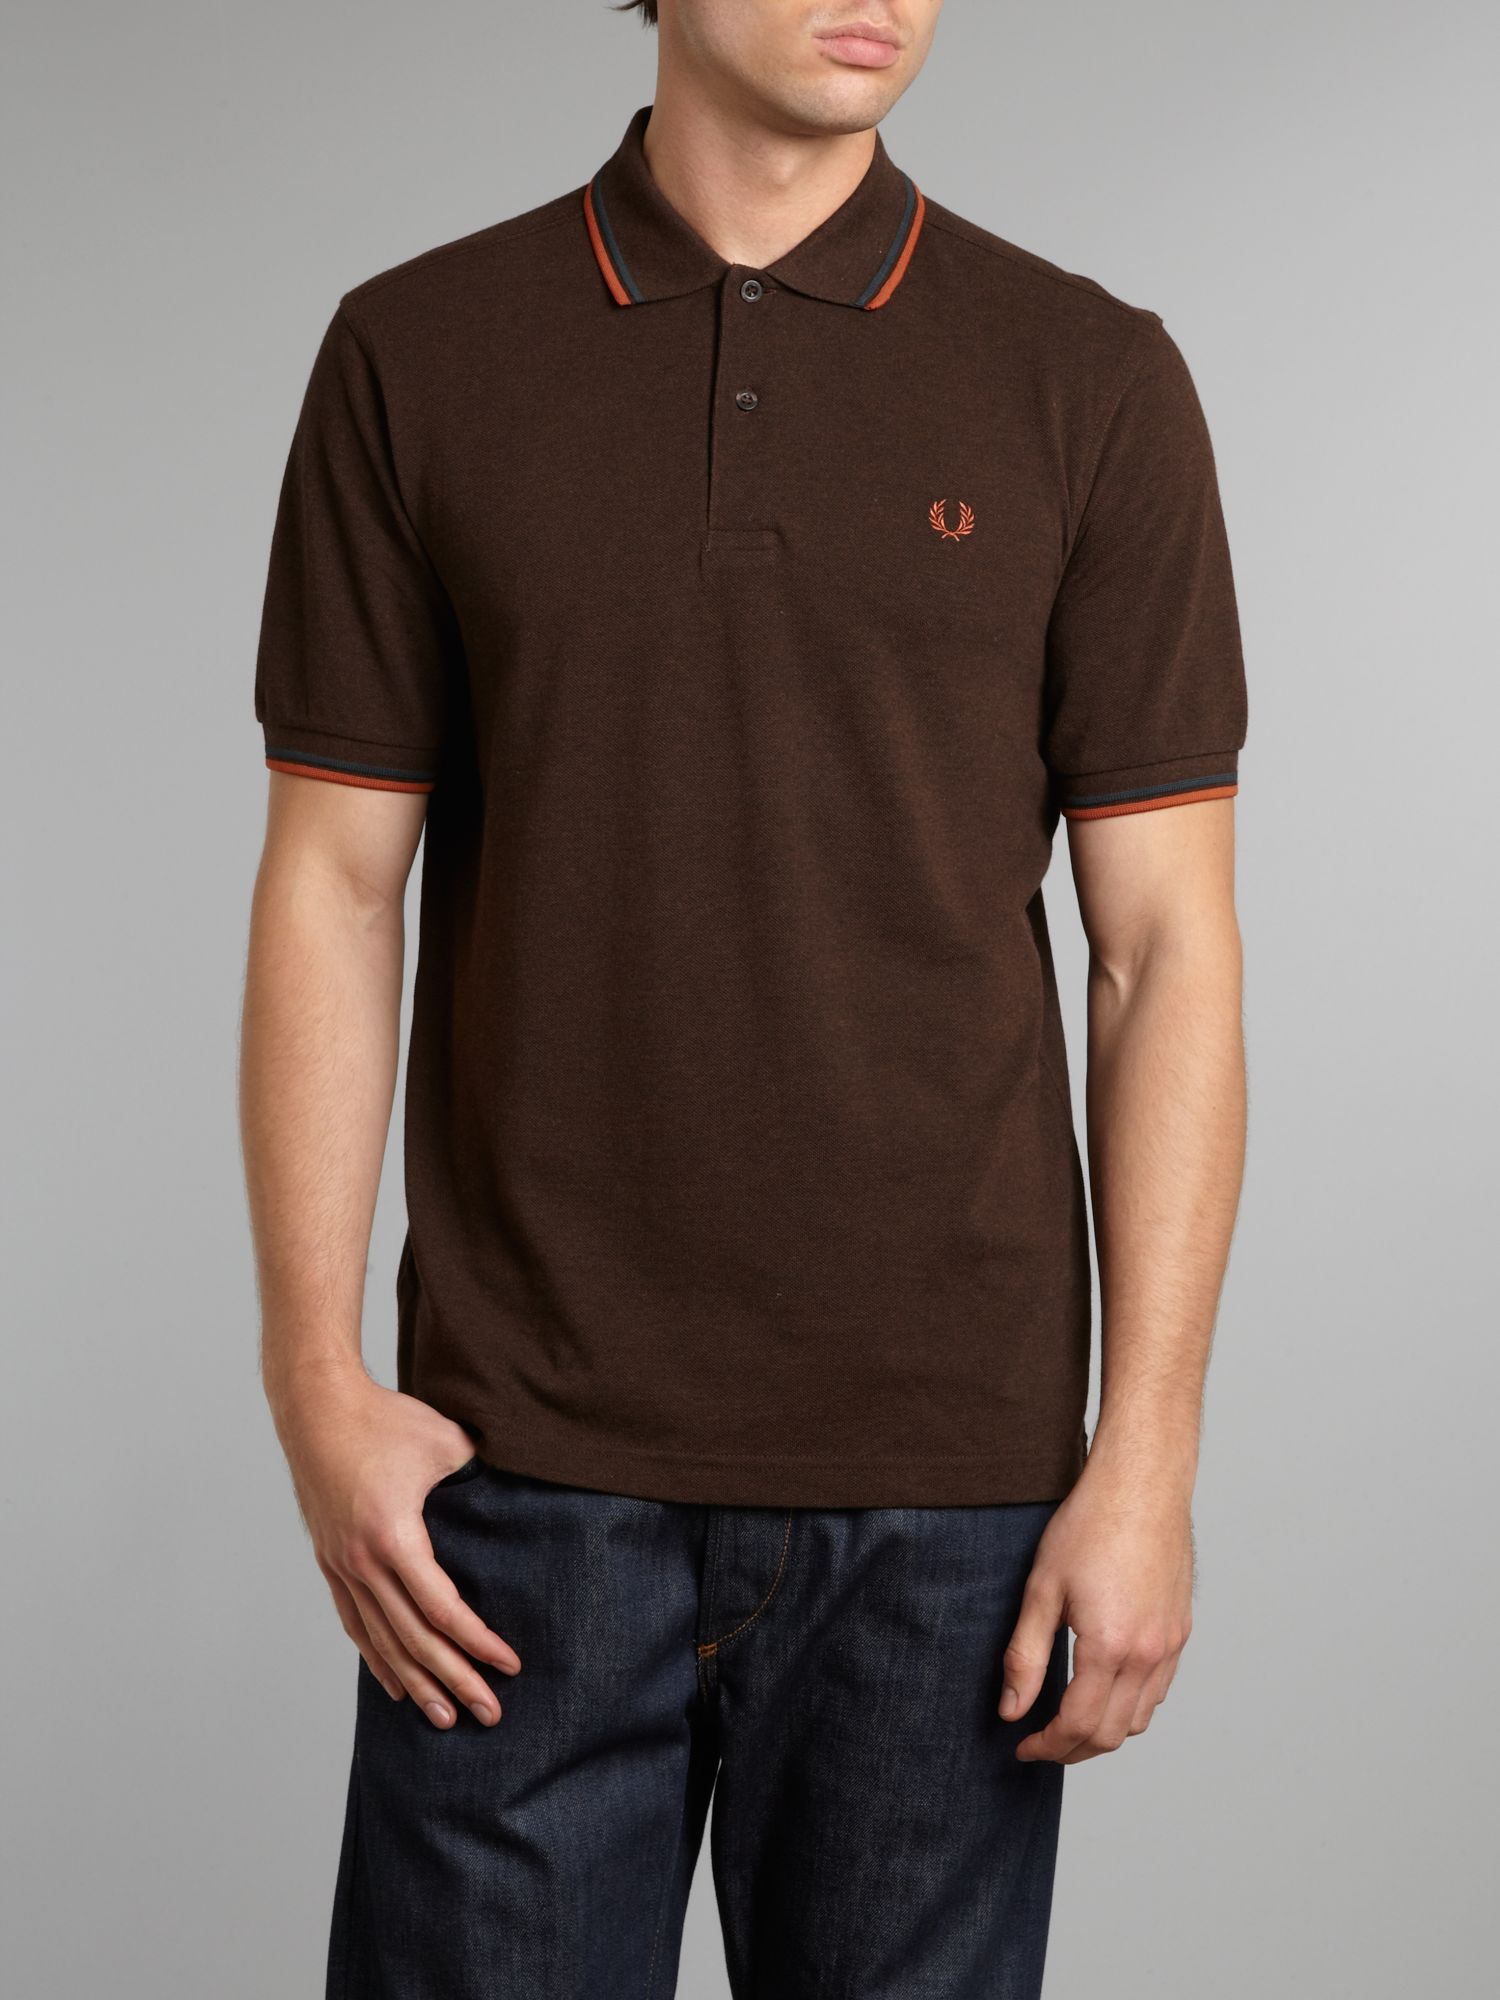 Fred perry Classic Twin Tipped Polo Shirt in Brown for Men ...